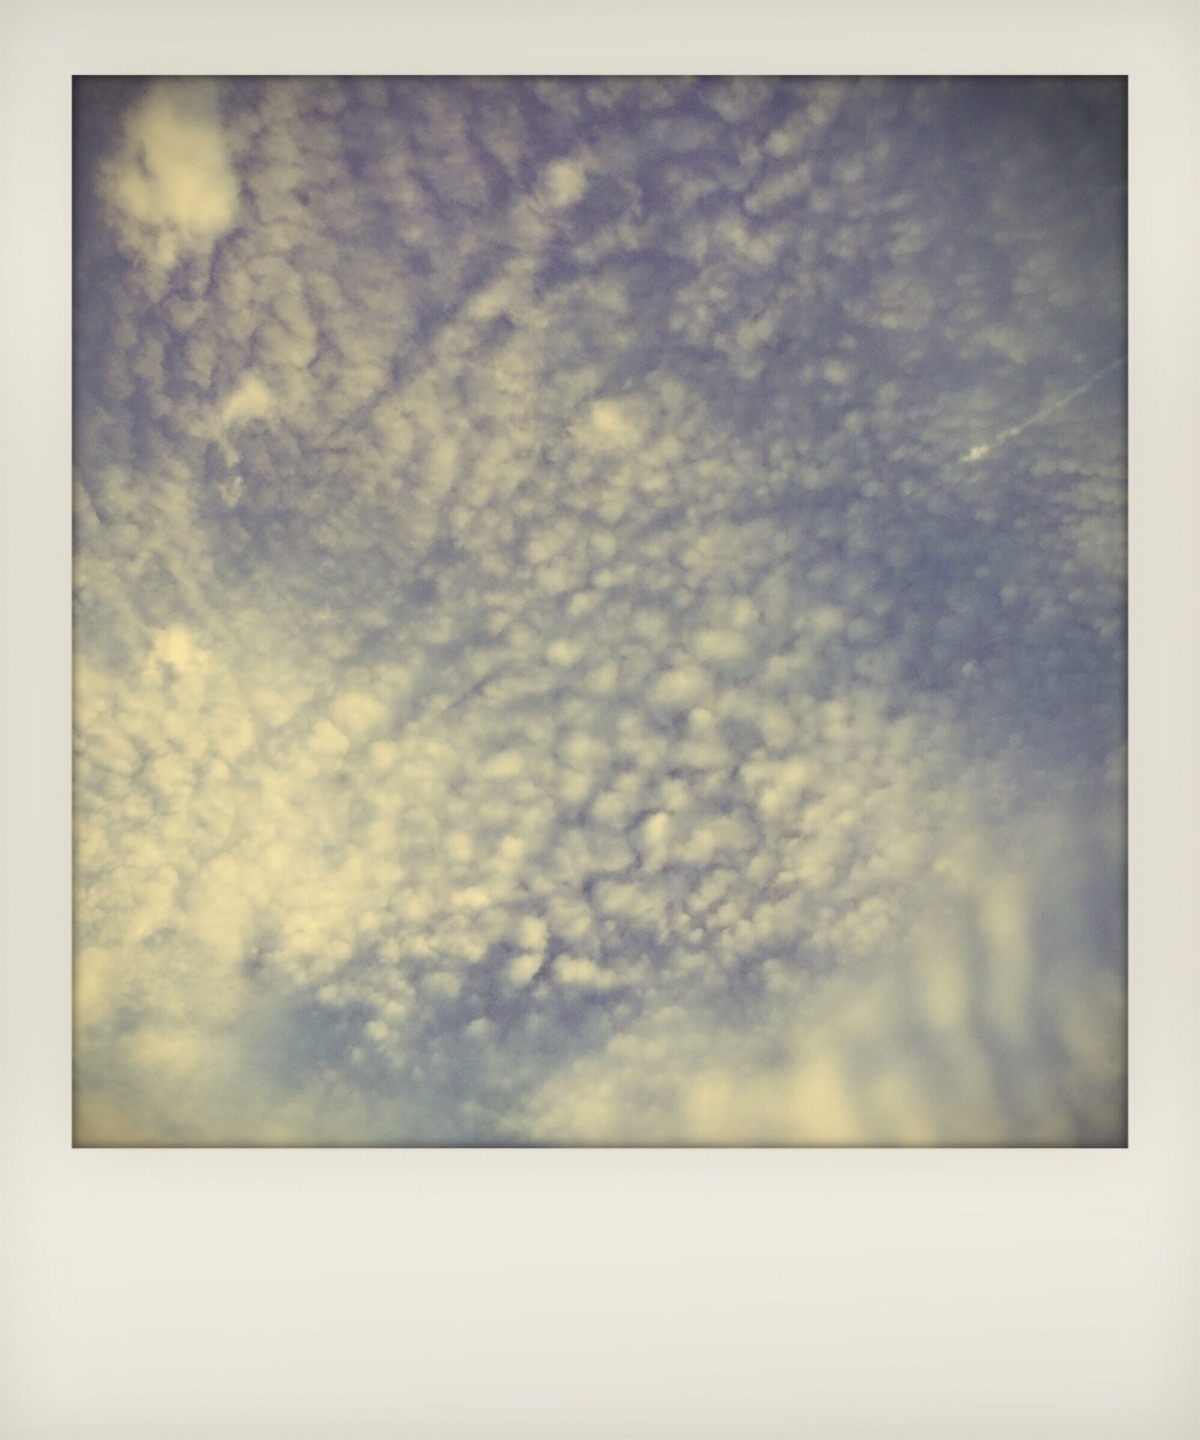 Clouds Making Patterns Apps - mikefl99 - mikefl99 | ello